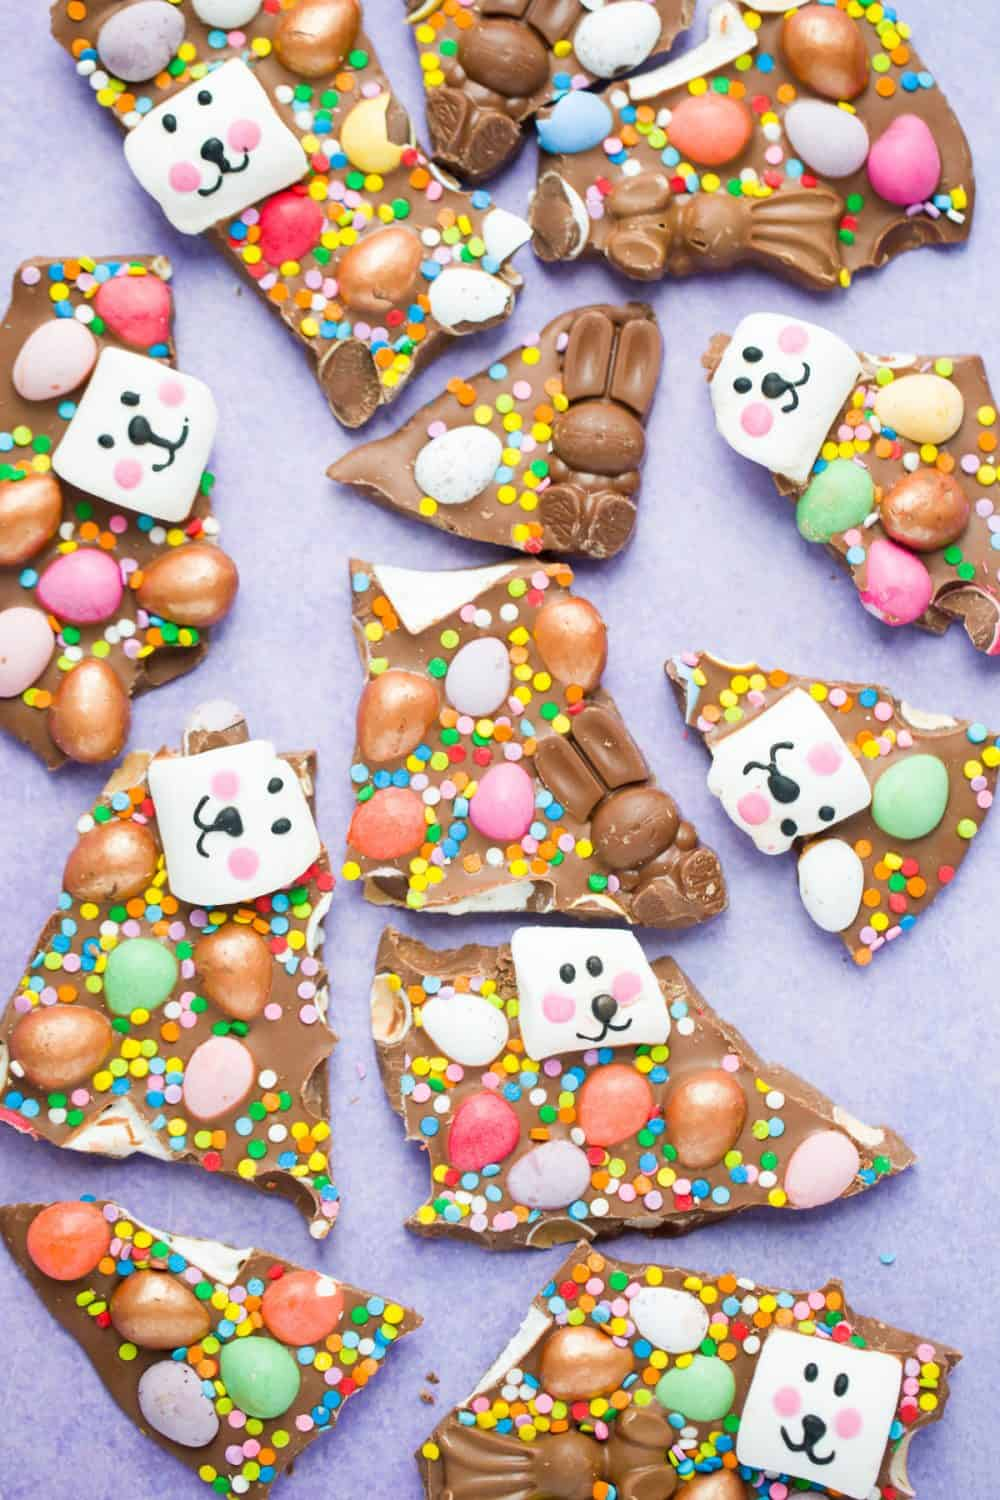 chocolate bark broken into pieces  topped with Easter treats on a purple background.